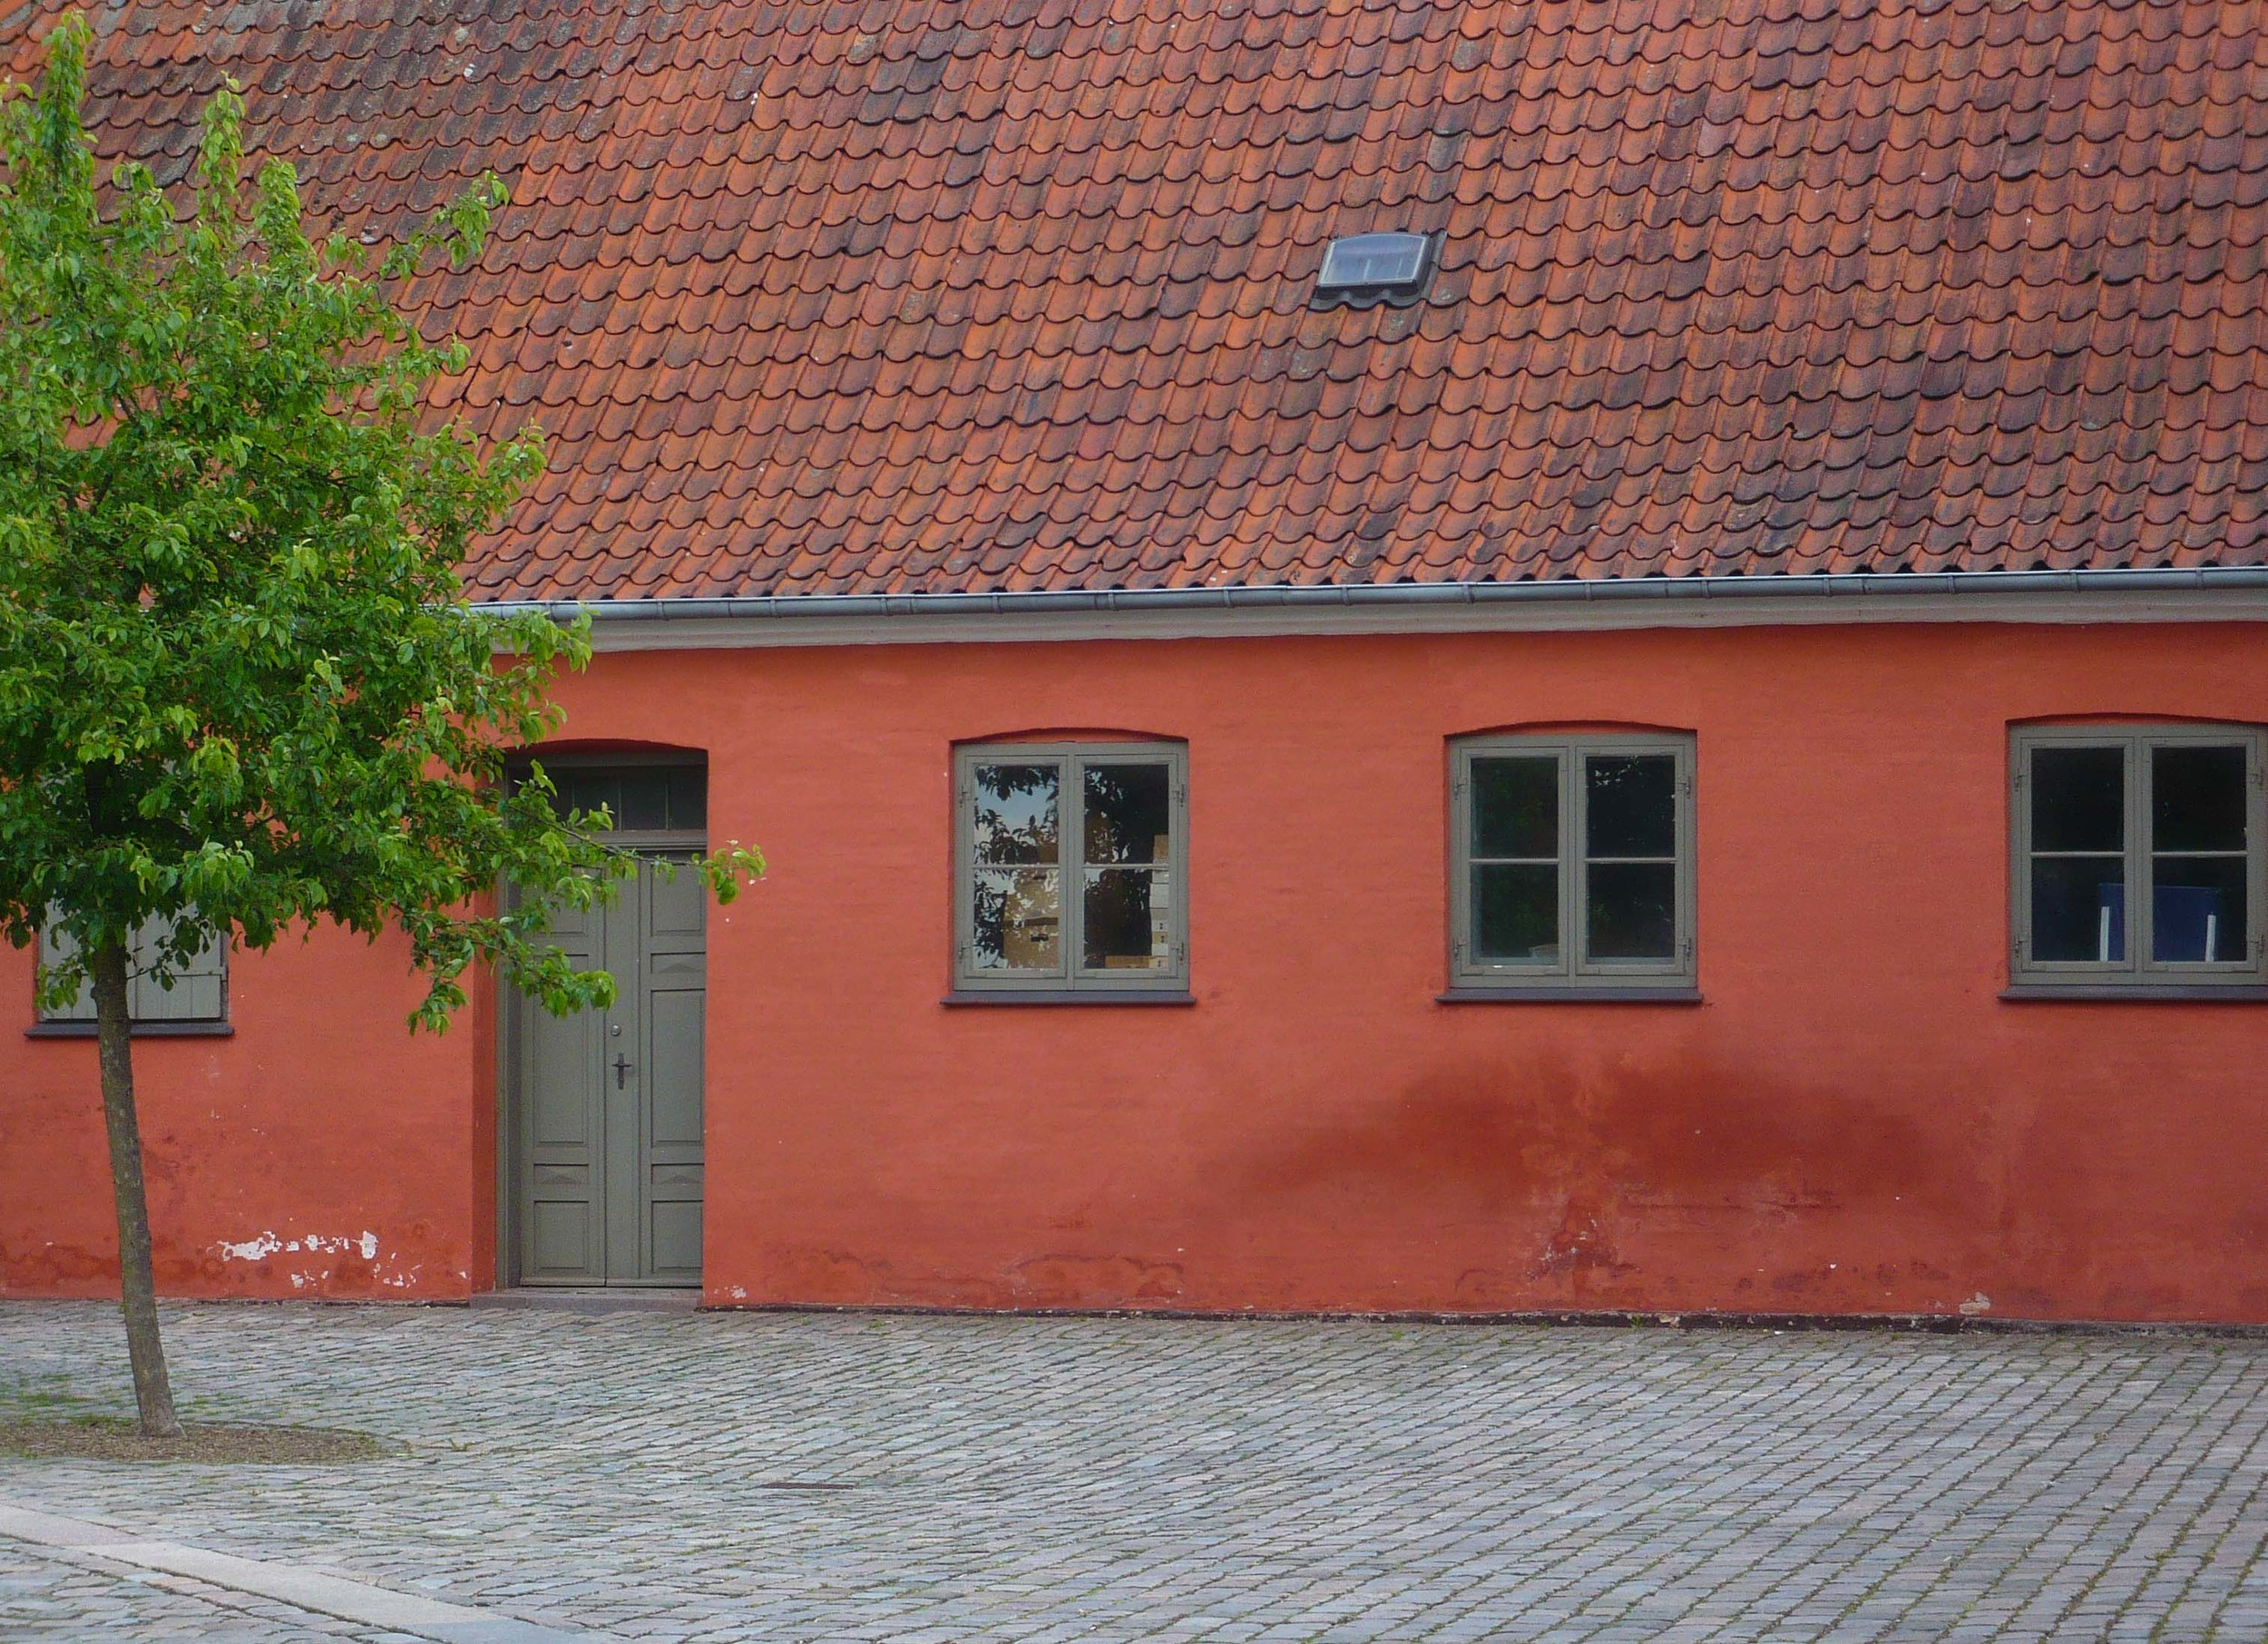 A single-storey building in Roskilde, Denmark